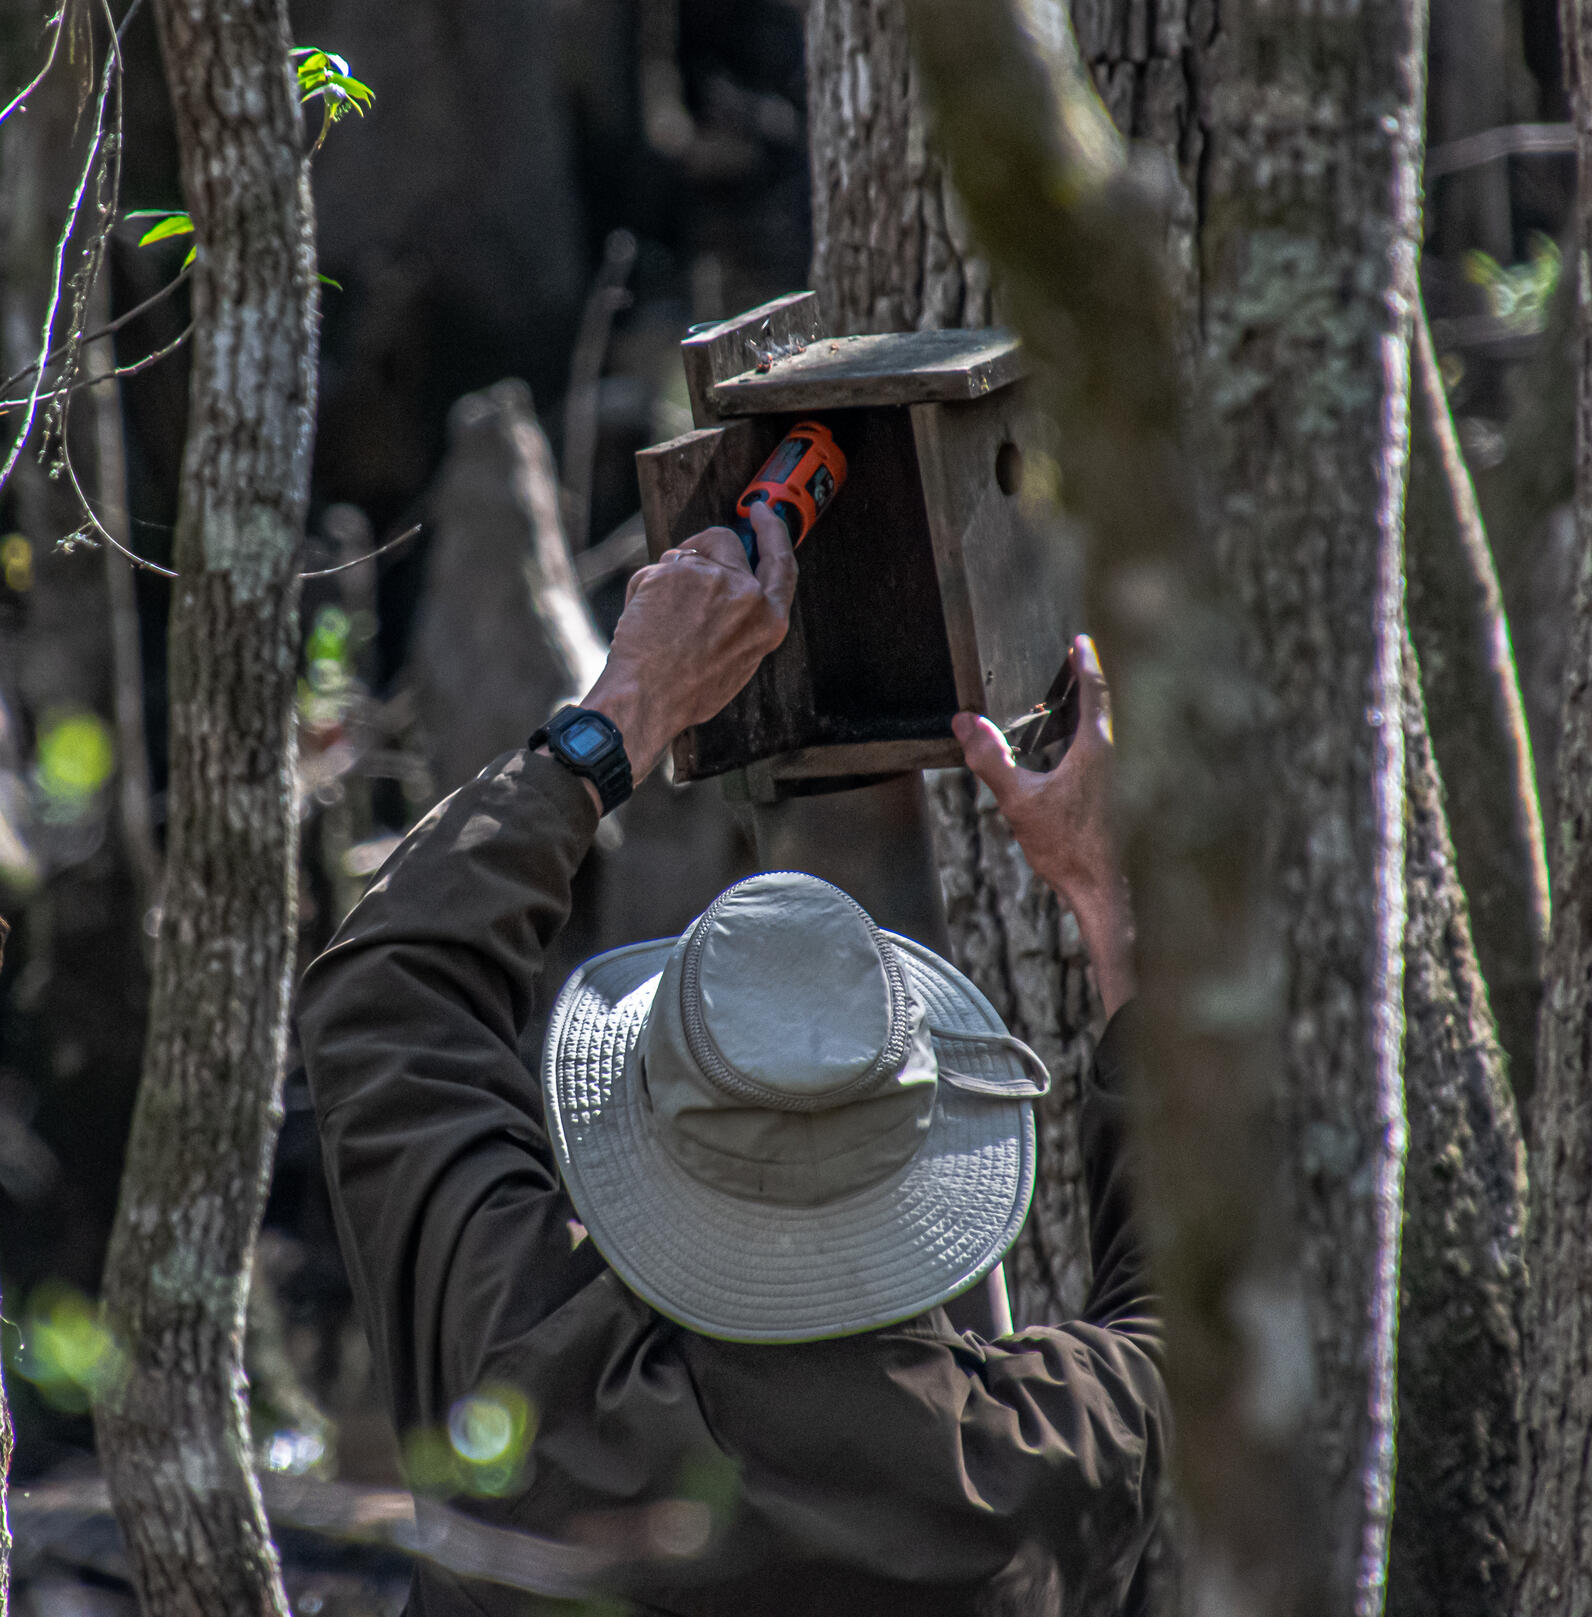 A man is using the orange handle of a screwdriver to clean out any debris in a wooden bird box, painted with camouflage in a swamp. He is wearing a beige hat and brown jacket,